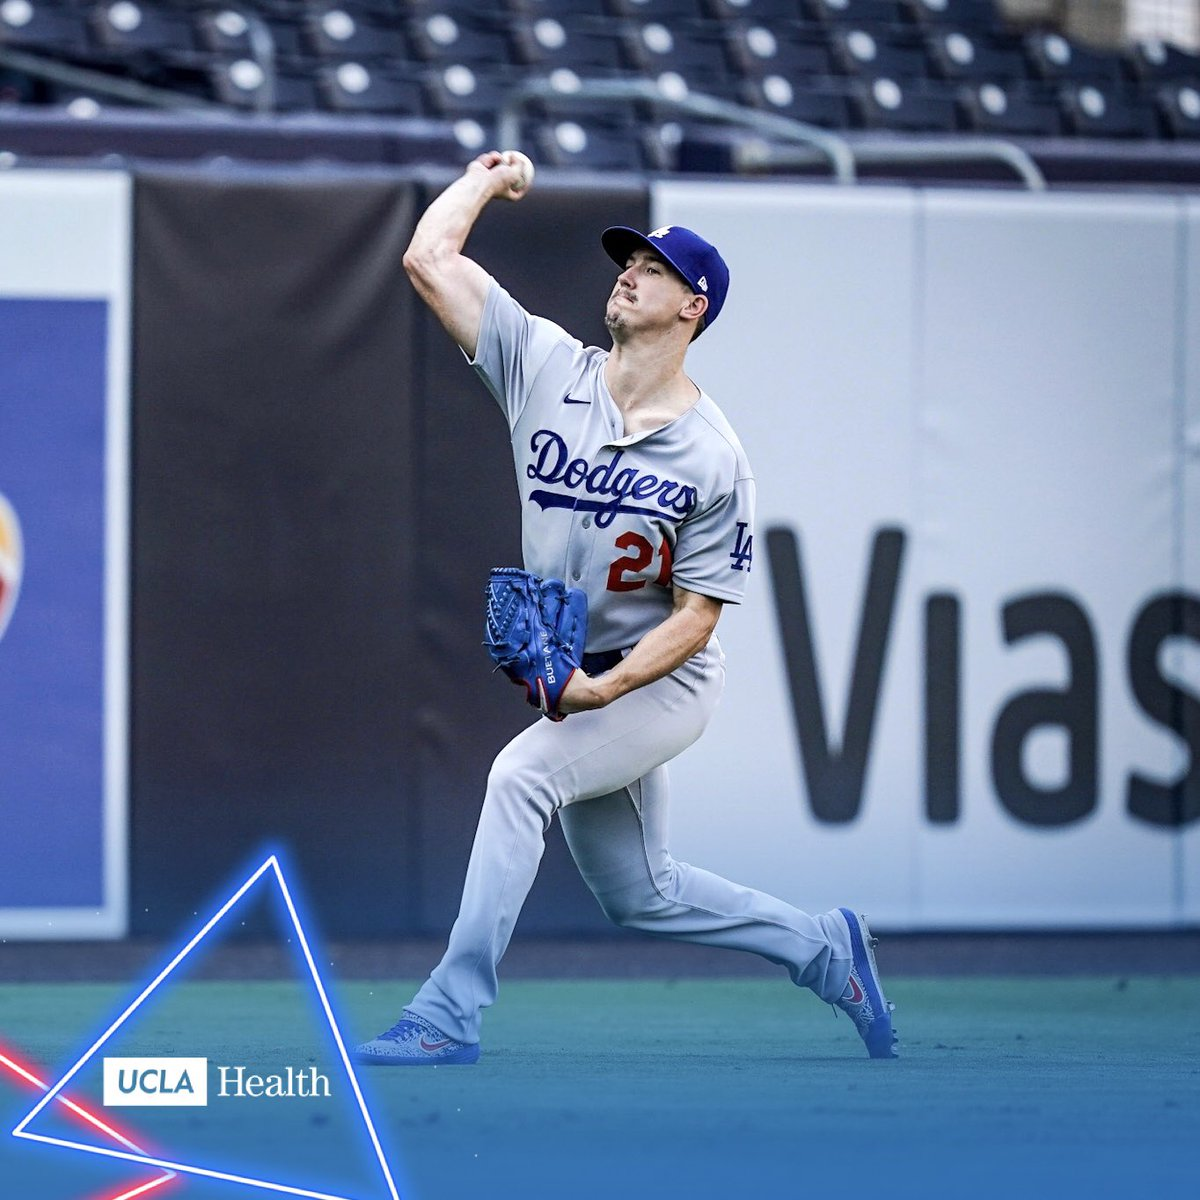 #ITFDB presented by @UCLAHealth.